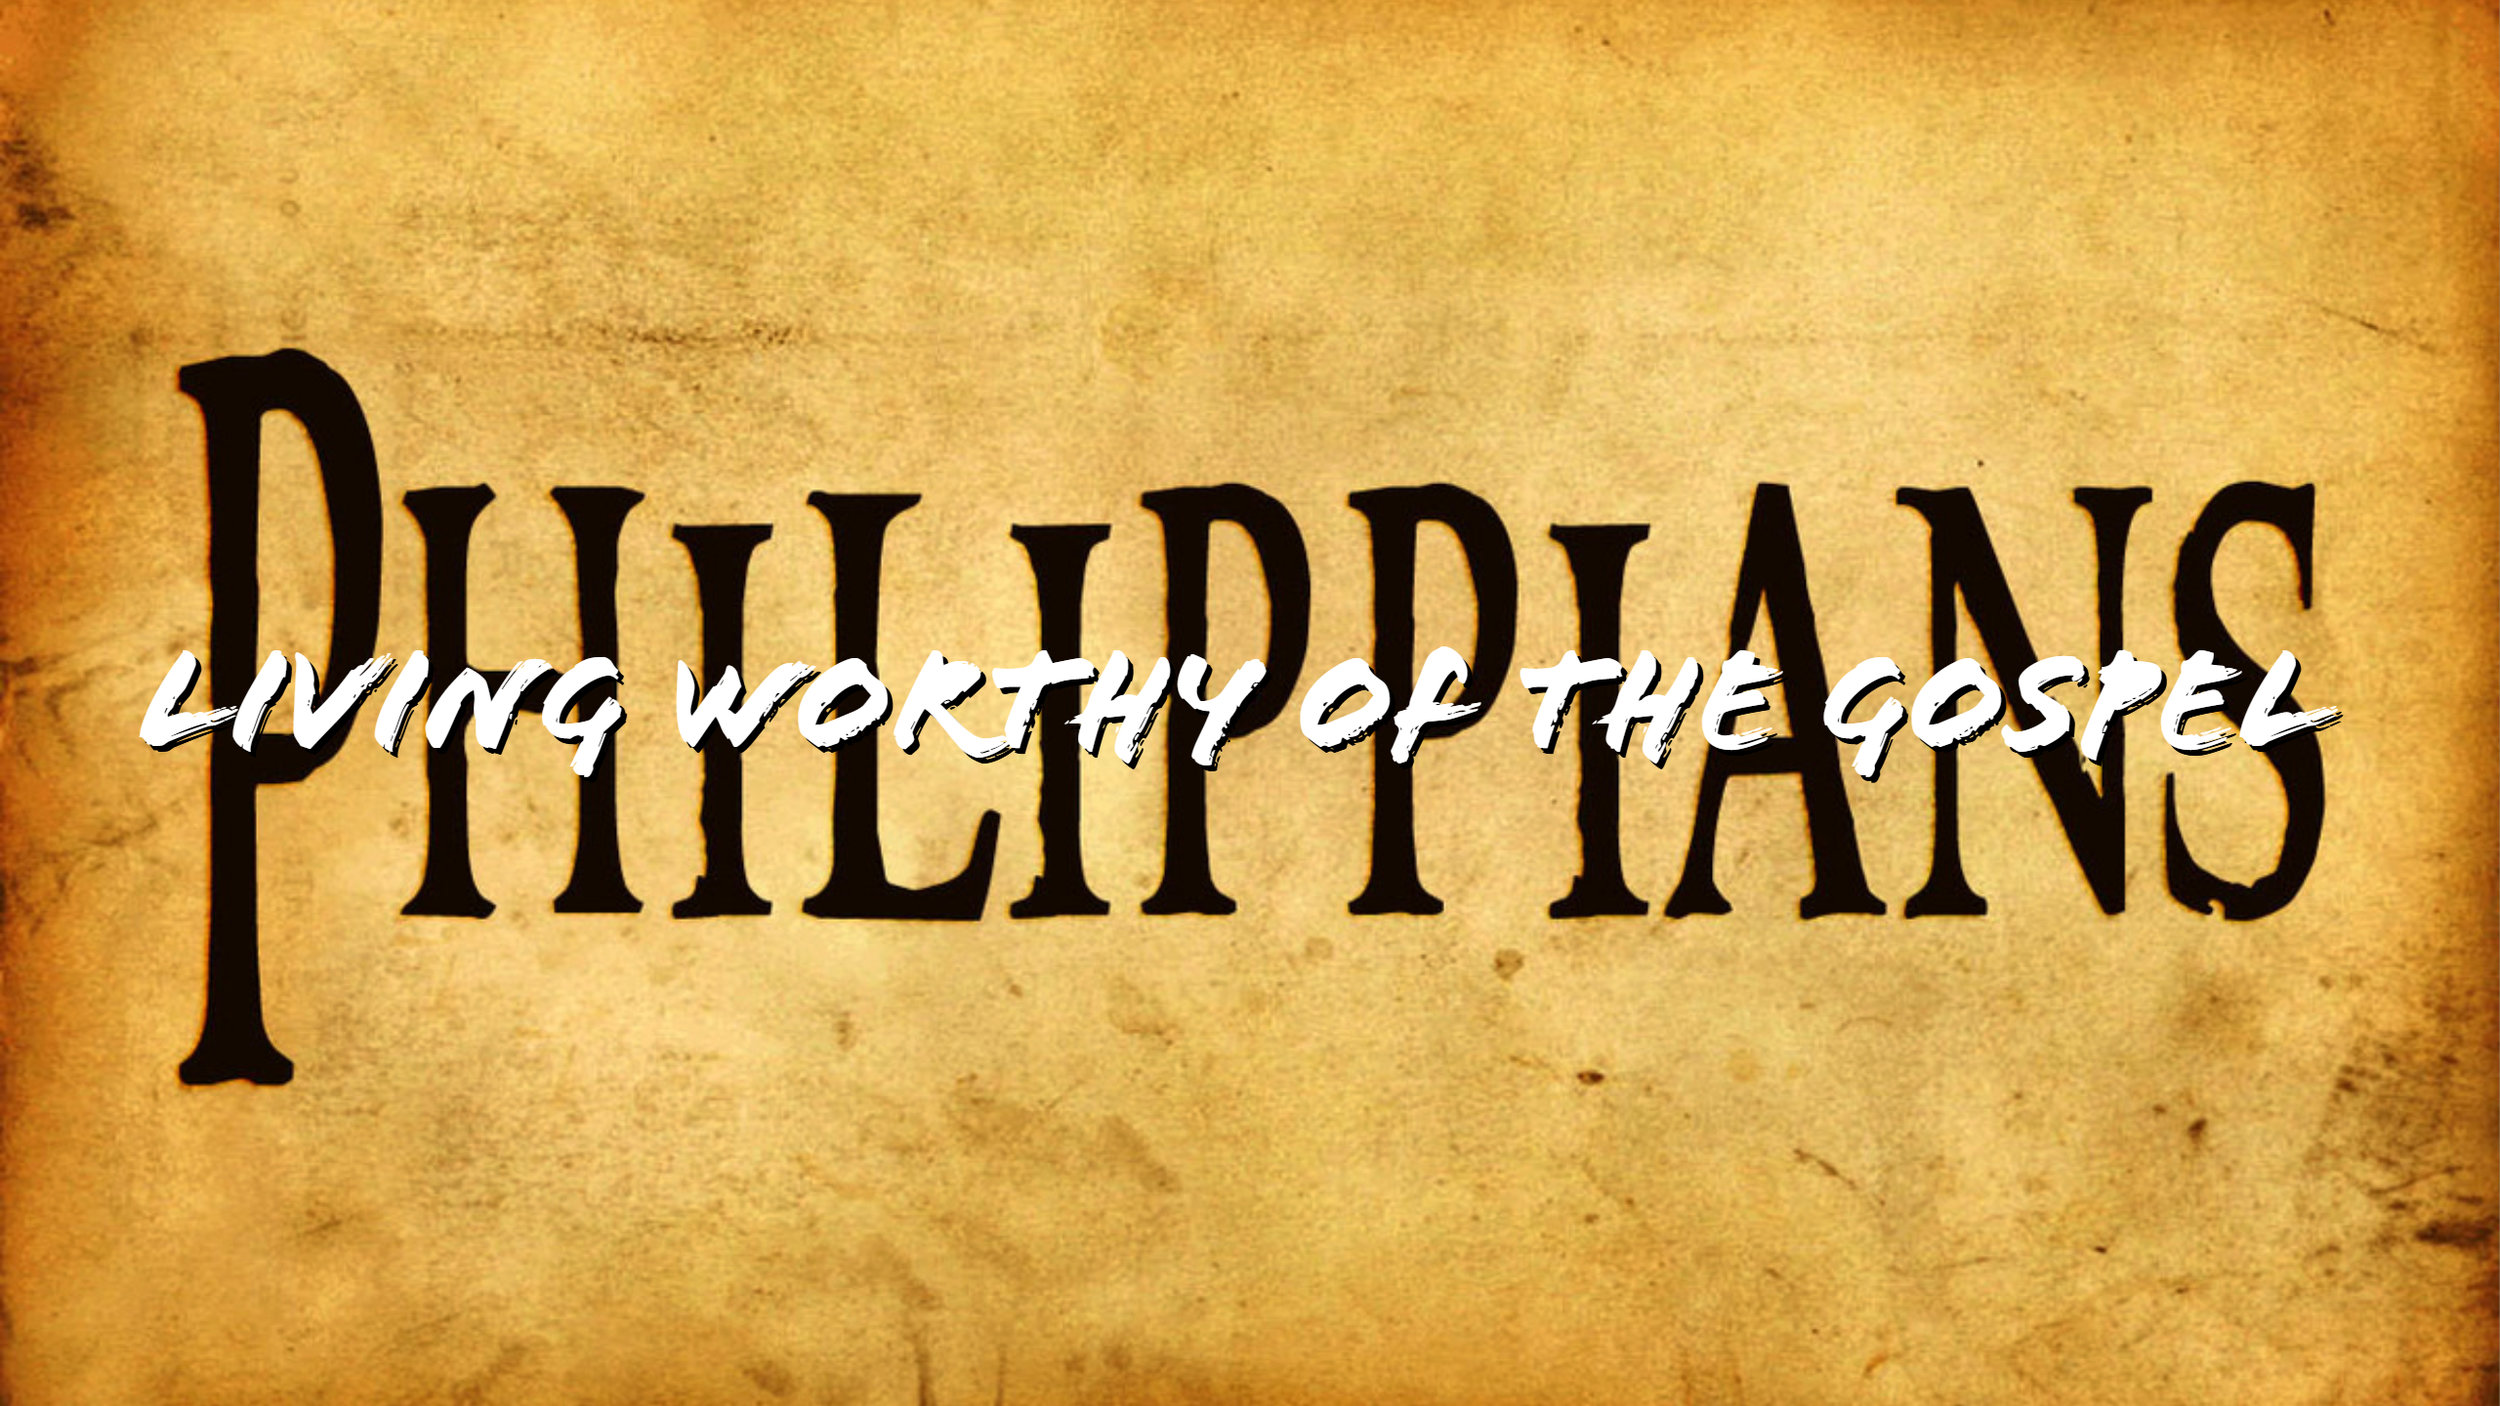 Check out the series on Philippians